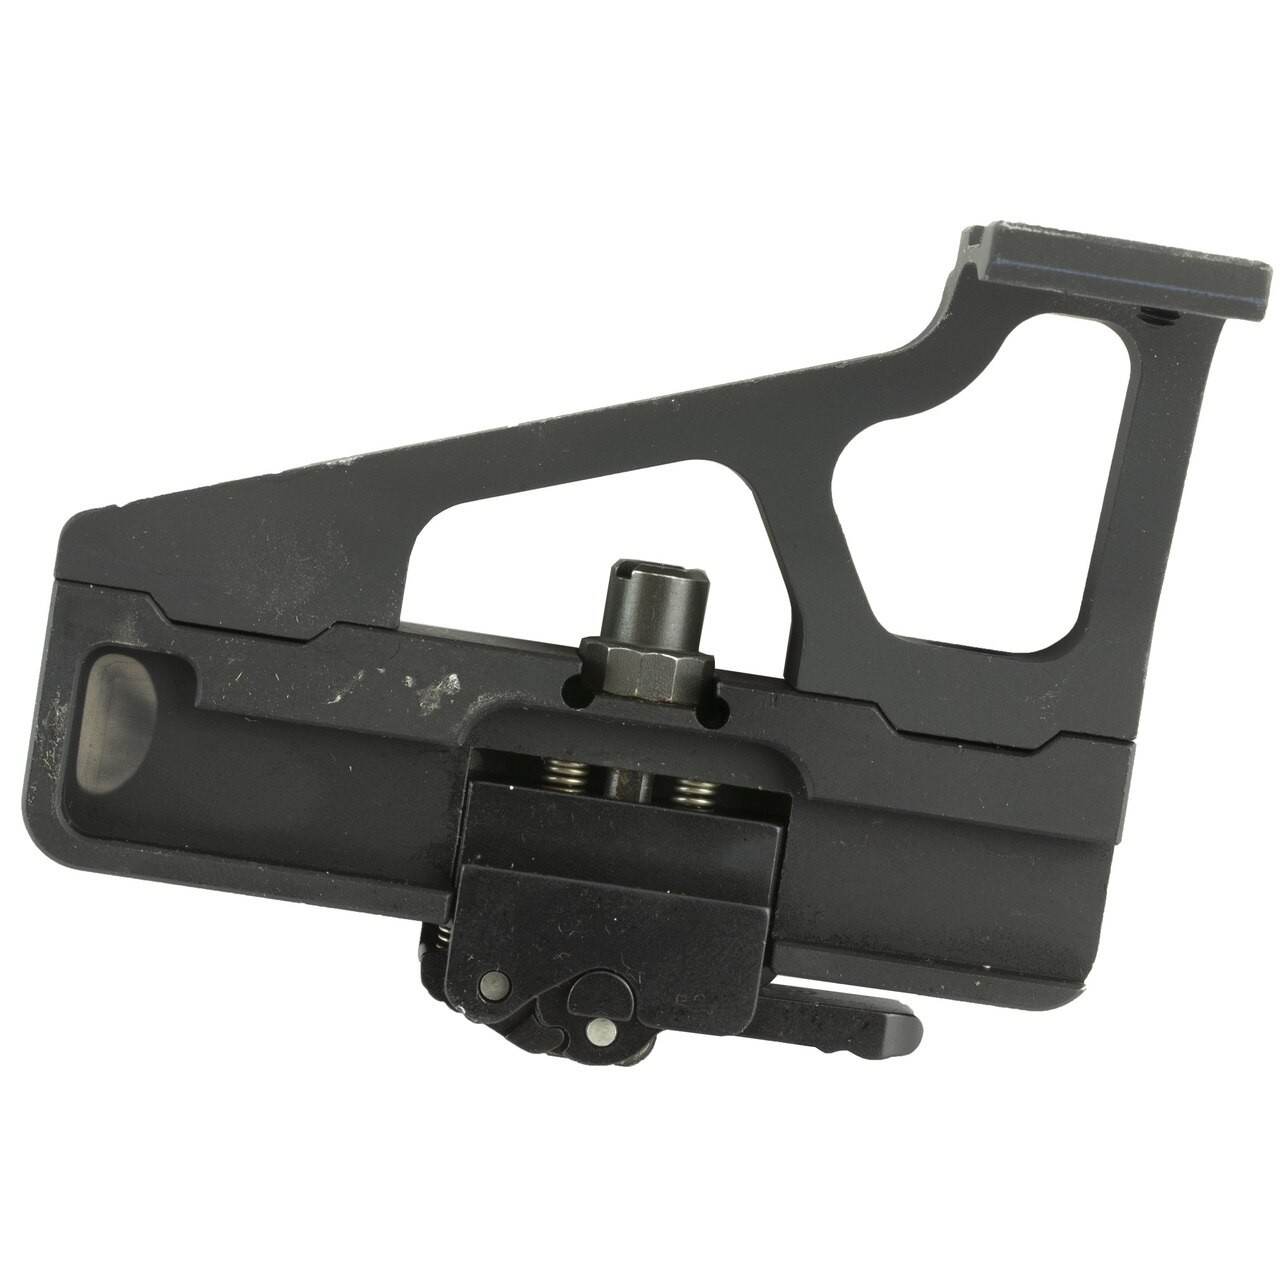 Midwest Industries MRO AK Side Mount Black